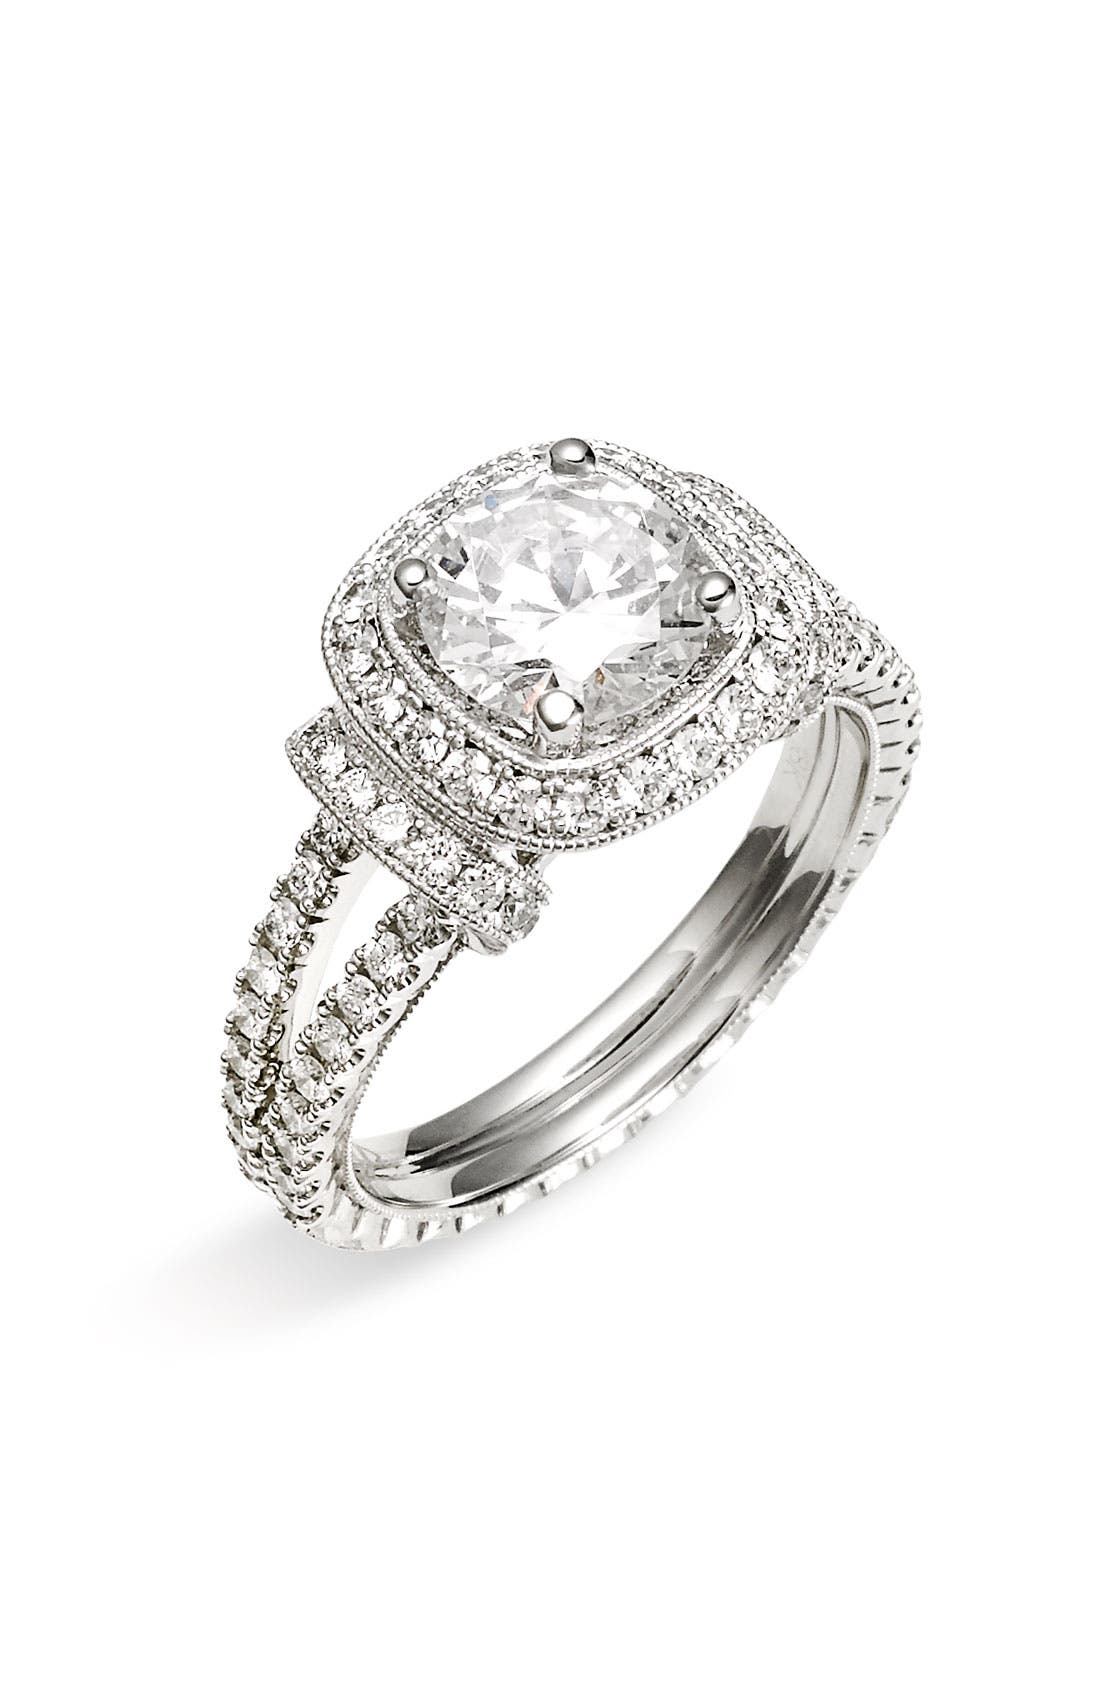 Alternate Image 1 Selected - Jack Kelége 'Romance' Cushion Set Diamond Engagement Ring Setting